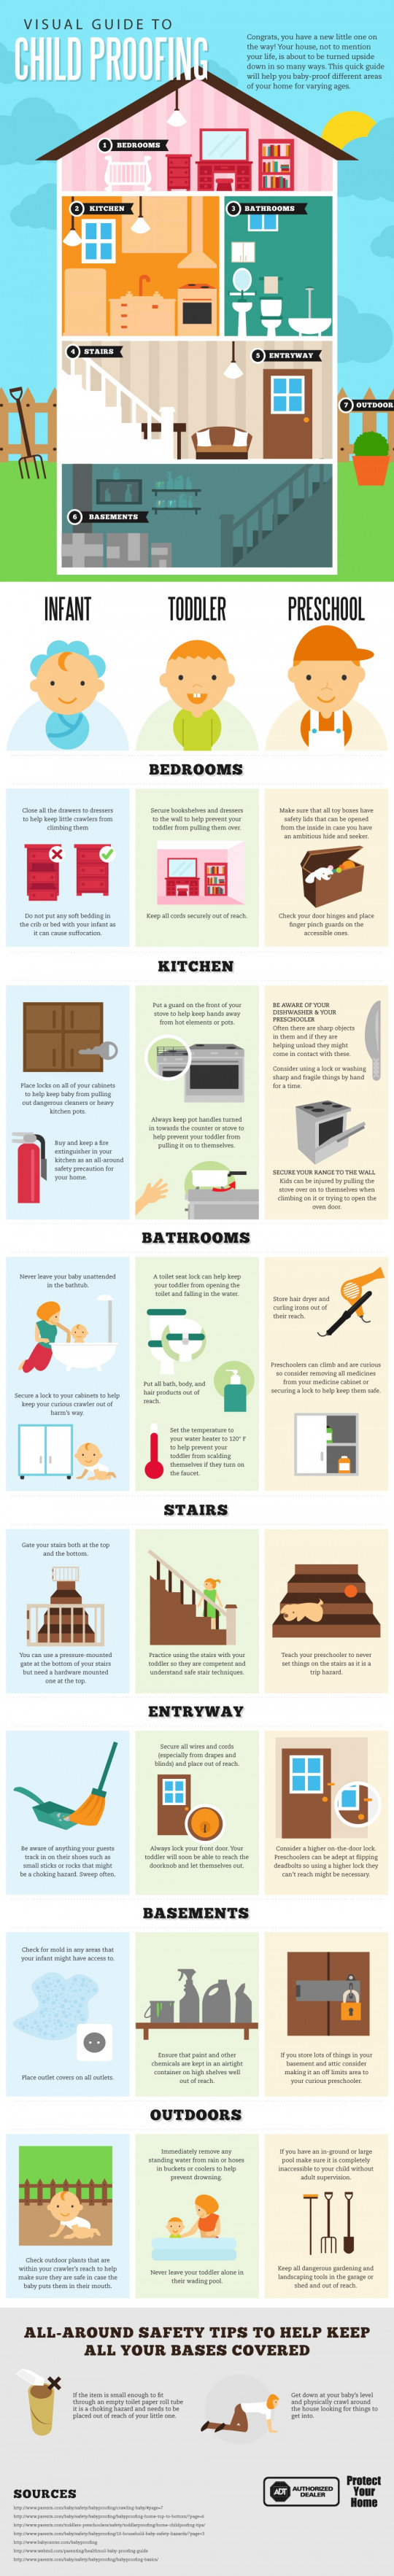 Visual Guide to Child Proofing